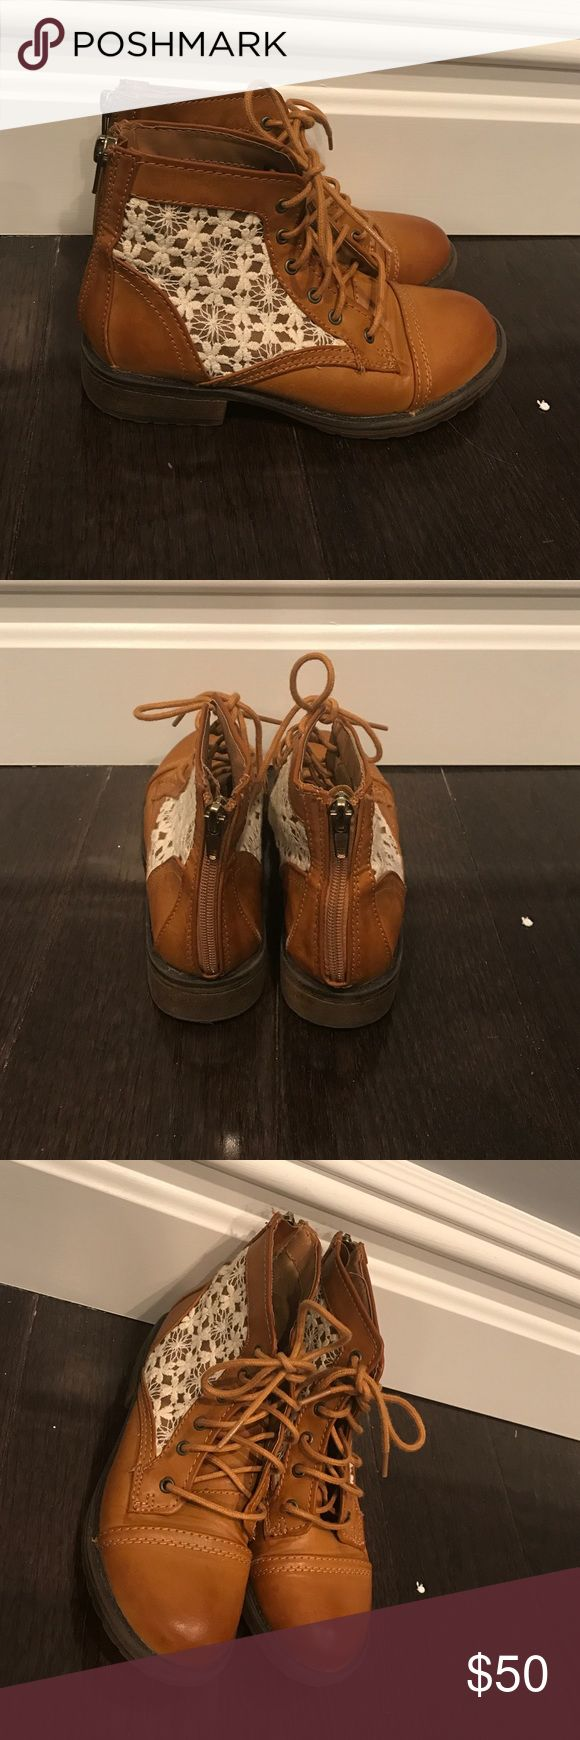 kids steve madden boots brown/tan with white embellishments, perfect for the spring time!! Steve Madden Shoes Boots